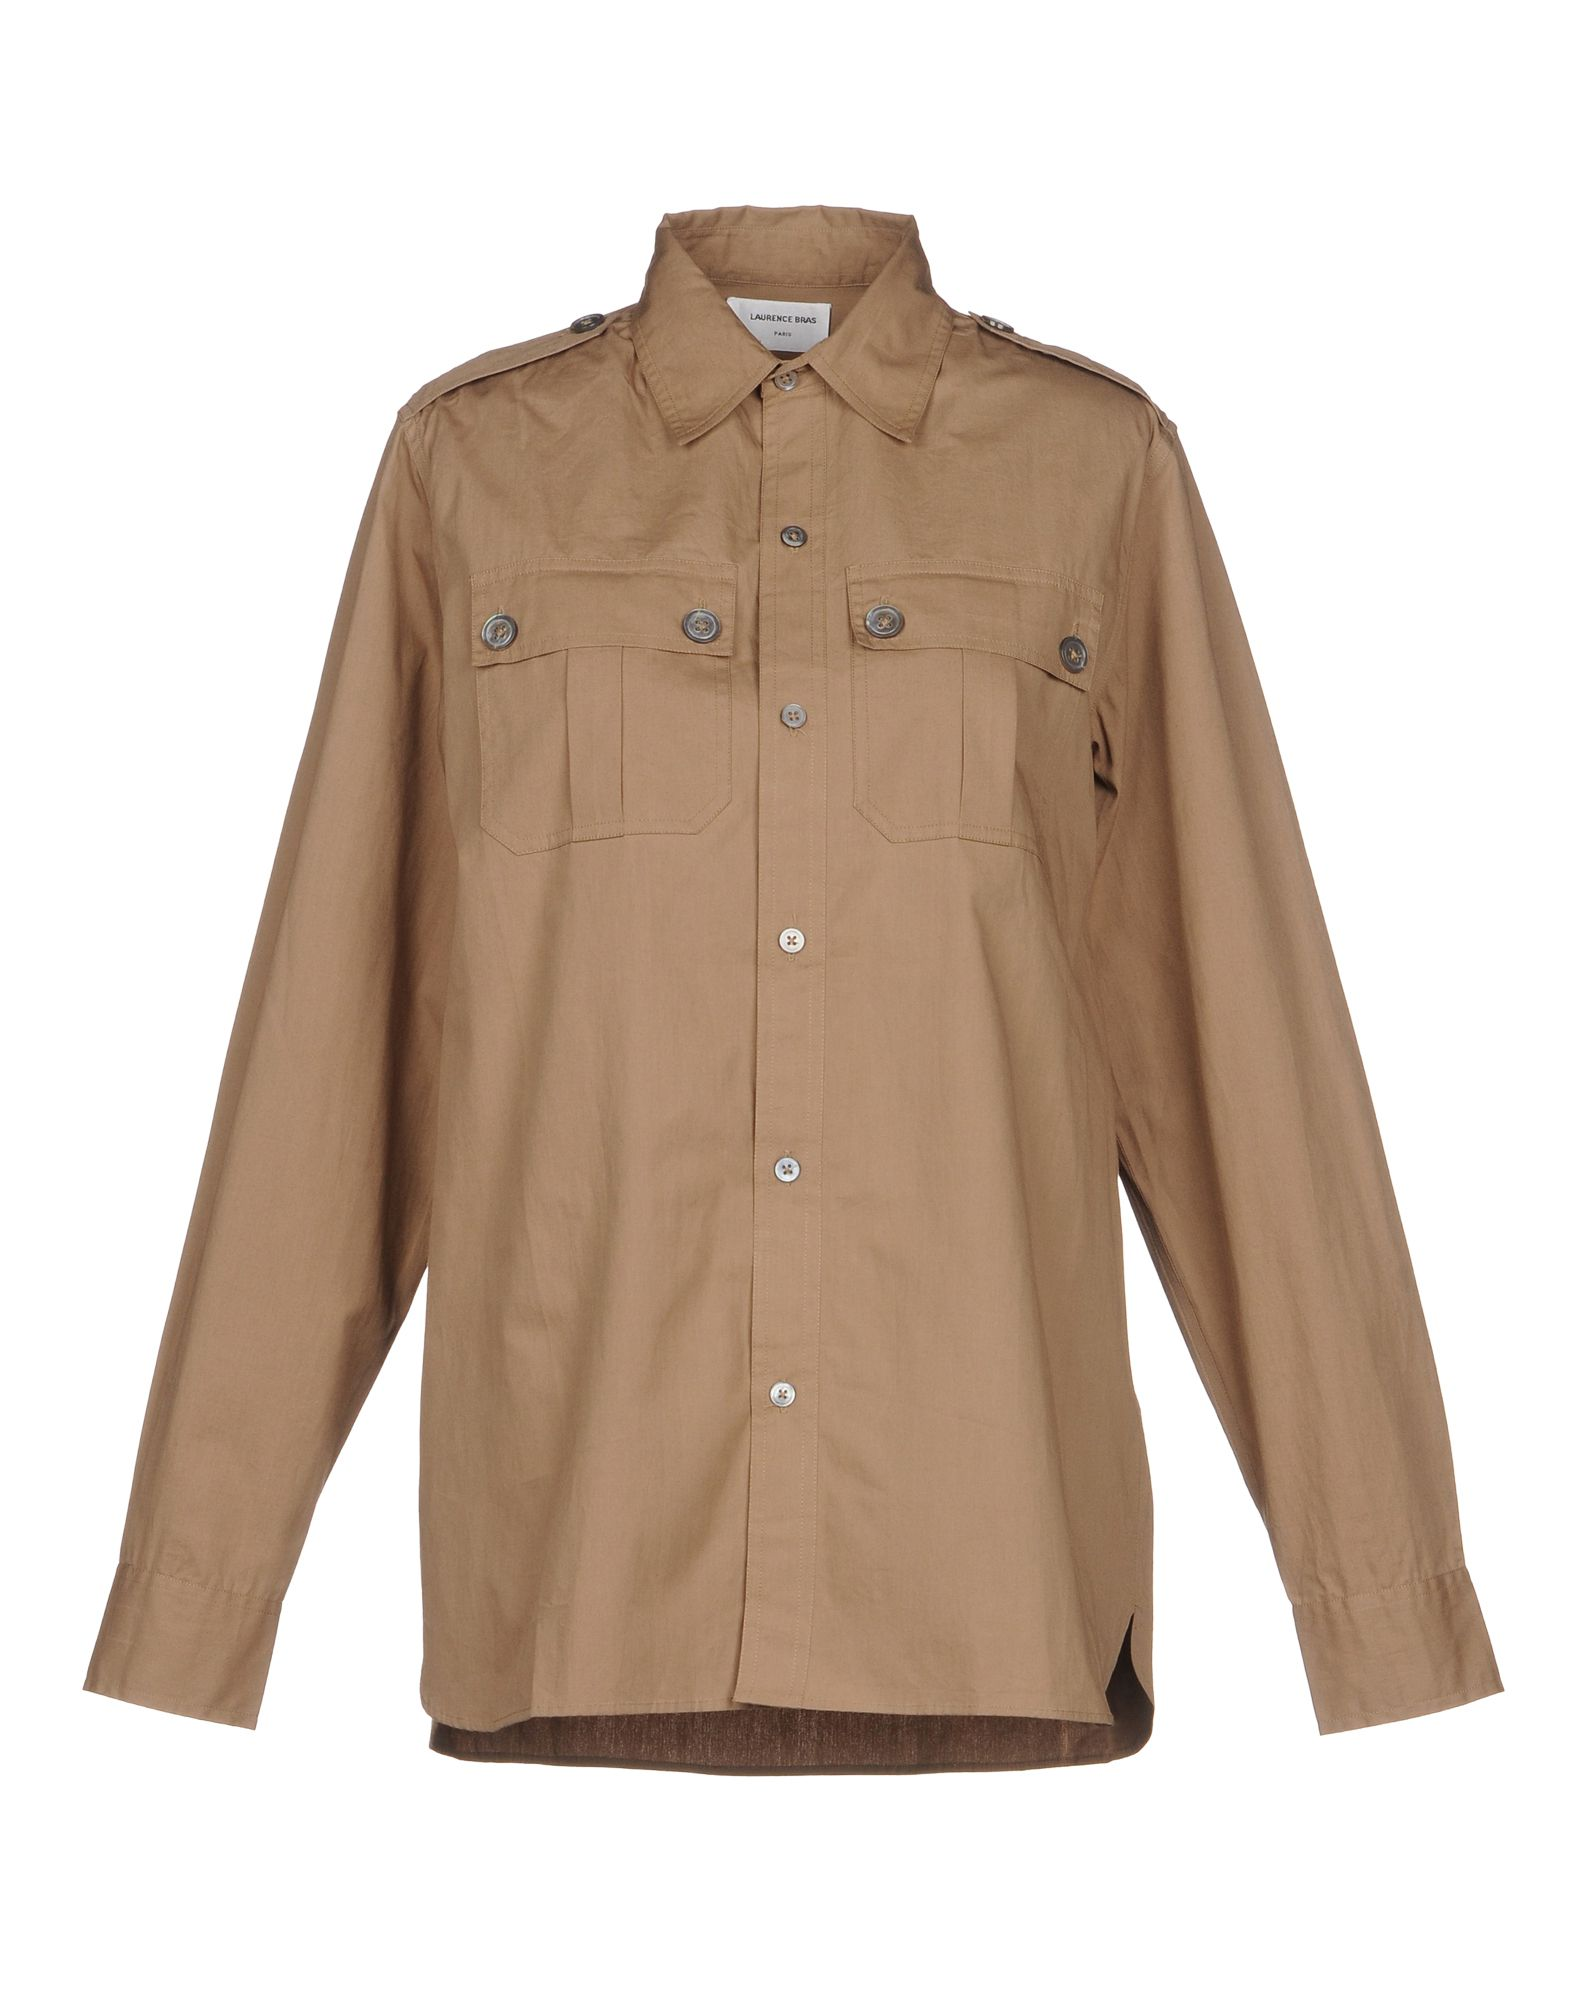 LAURENCE BRAS Solid Color Shirts & Blouses in Khaki